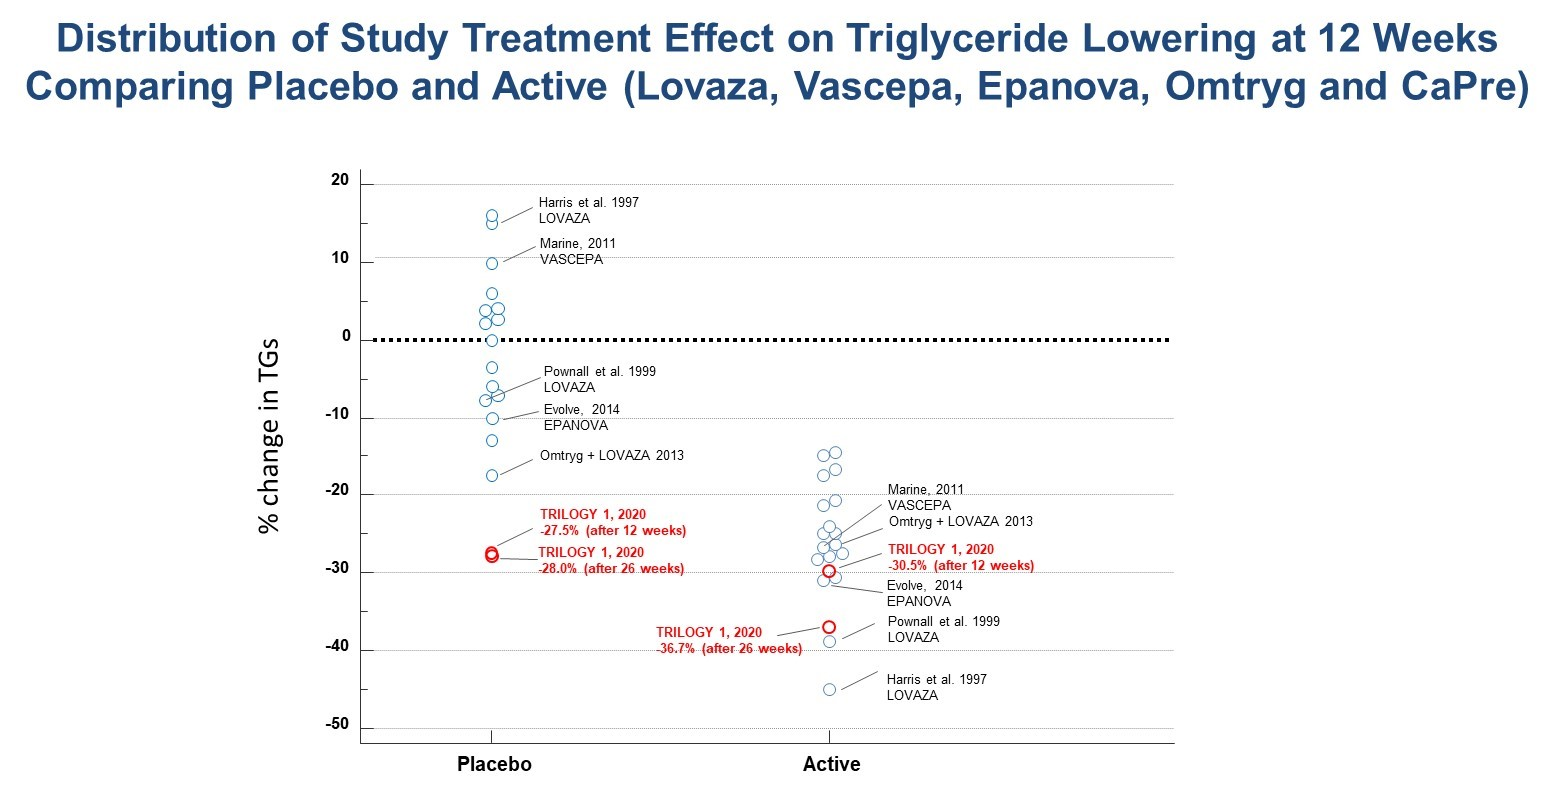 Acasti Trilogy Data: Distribution of Study Treatment Effect on Triglyceride Lowering at 12 Weeks Comparing Placebo and Active (Lovaza, Vascepa, Epanova, Omtryg and CaPre)